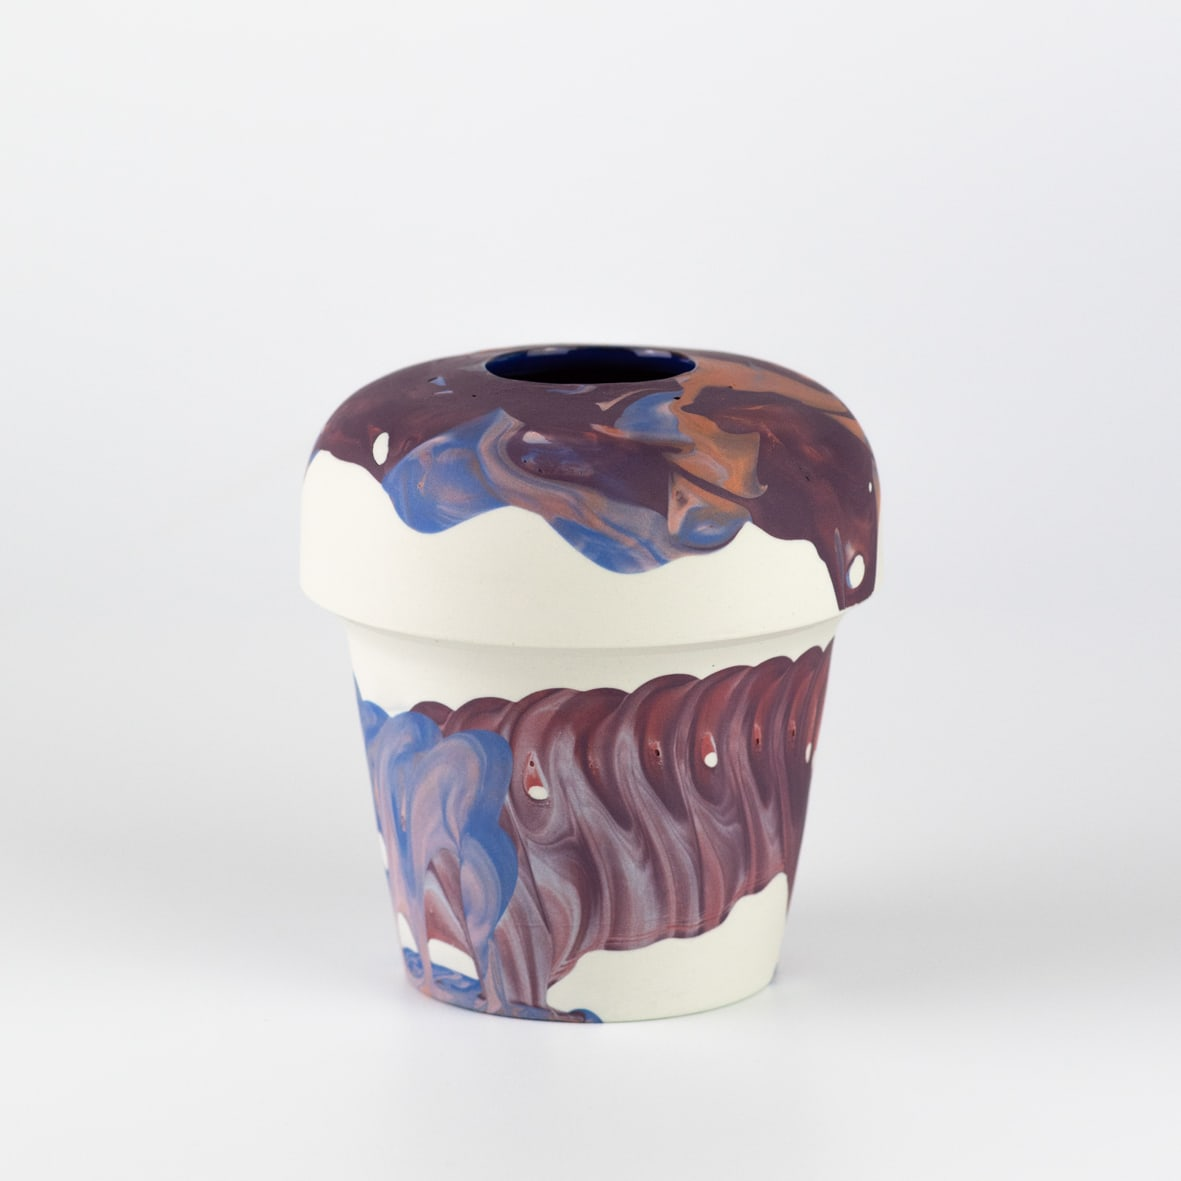 """<span class=""""link fancybox-details-link""""><a href=""""/artists/219-james-pegg/works/6573-james-pegg-kontohondros-vase-2019/"""">View Detail Page</a></span><div class=""""artist""""><strong>James Pegg</strong></div> <div class=""""title""""><em>Kontohondros Vase</em>, 2019</div> <div class=""""medium"""">action-cast stained porcelain with glazed interior</div><div class=""""price"""">£155.00</div><div class=""""copyright_line"""">OwnArt: £ 15.50 x 10 months, 0% APR</div>"""